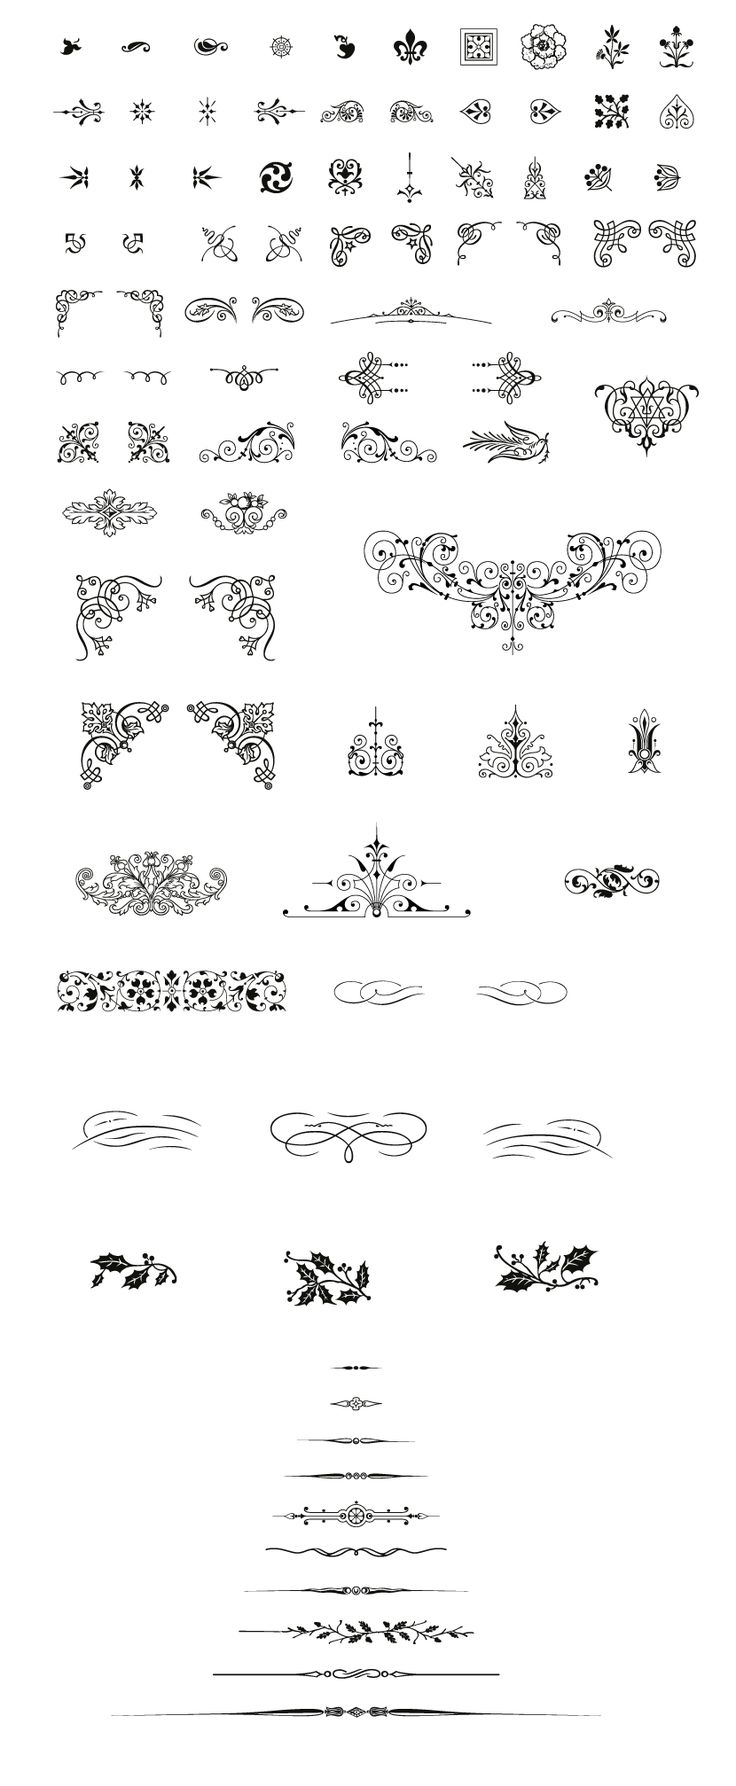 Free Vintage Vector Pack, 85 Vector Decorative Ornaments included, 18 Vector Frame Borders for Illustrator CS included. Free pack for any commercial work.